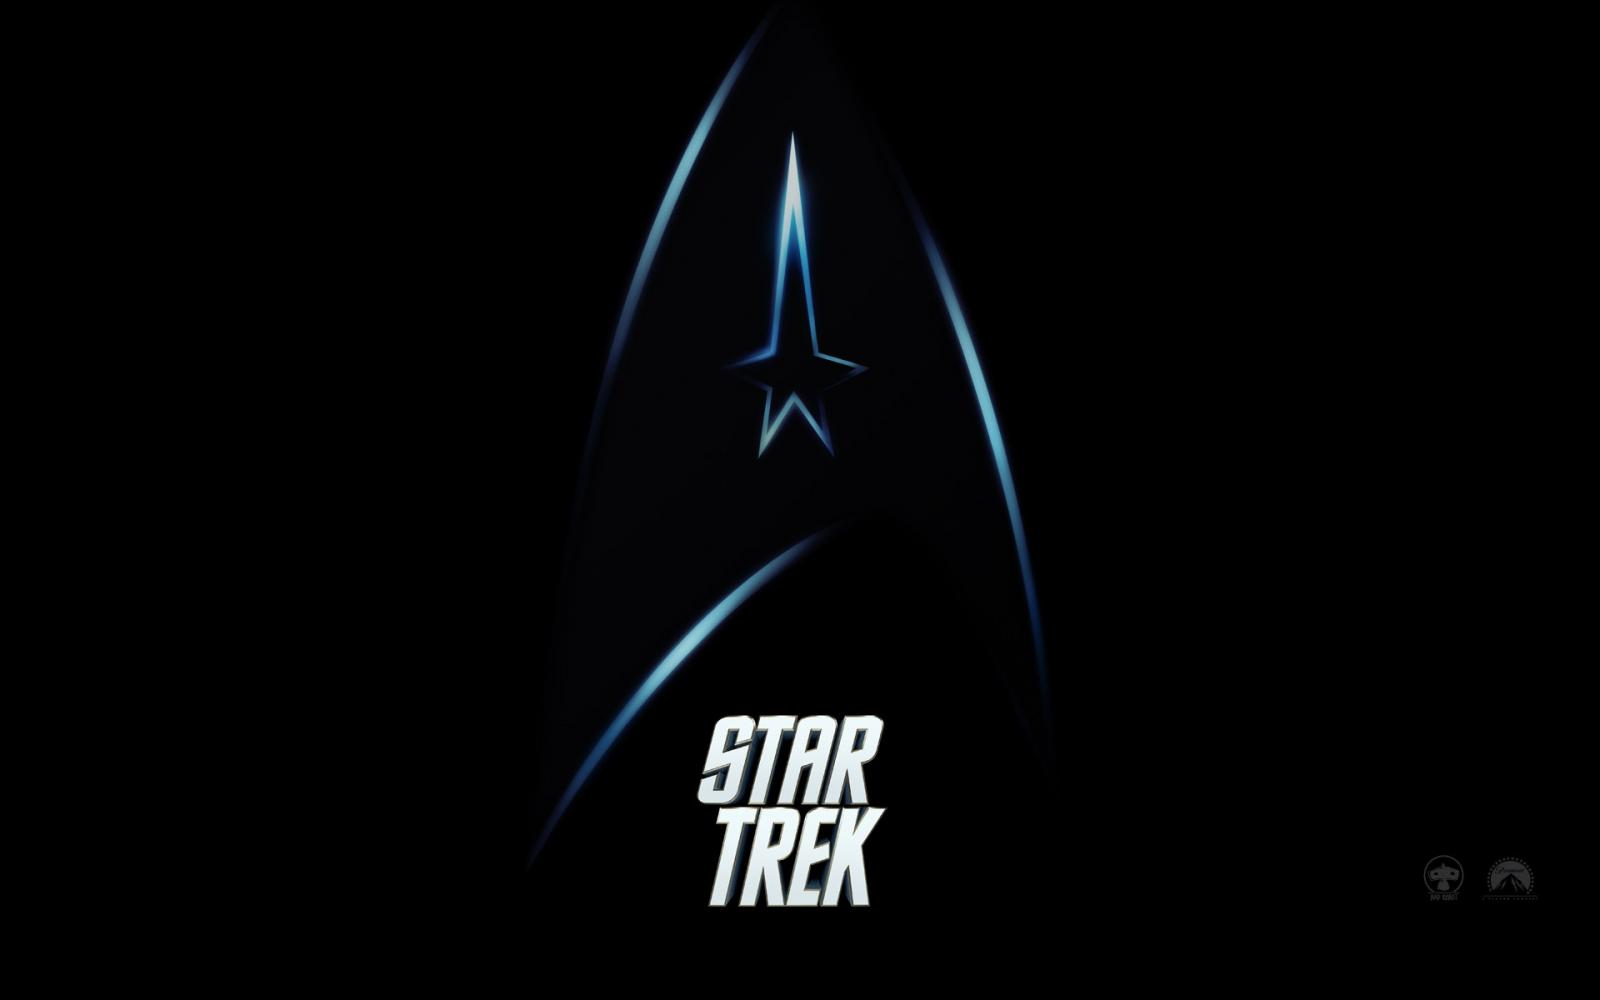 Wallpaper Star Trek Logo